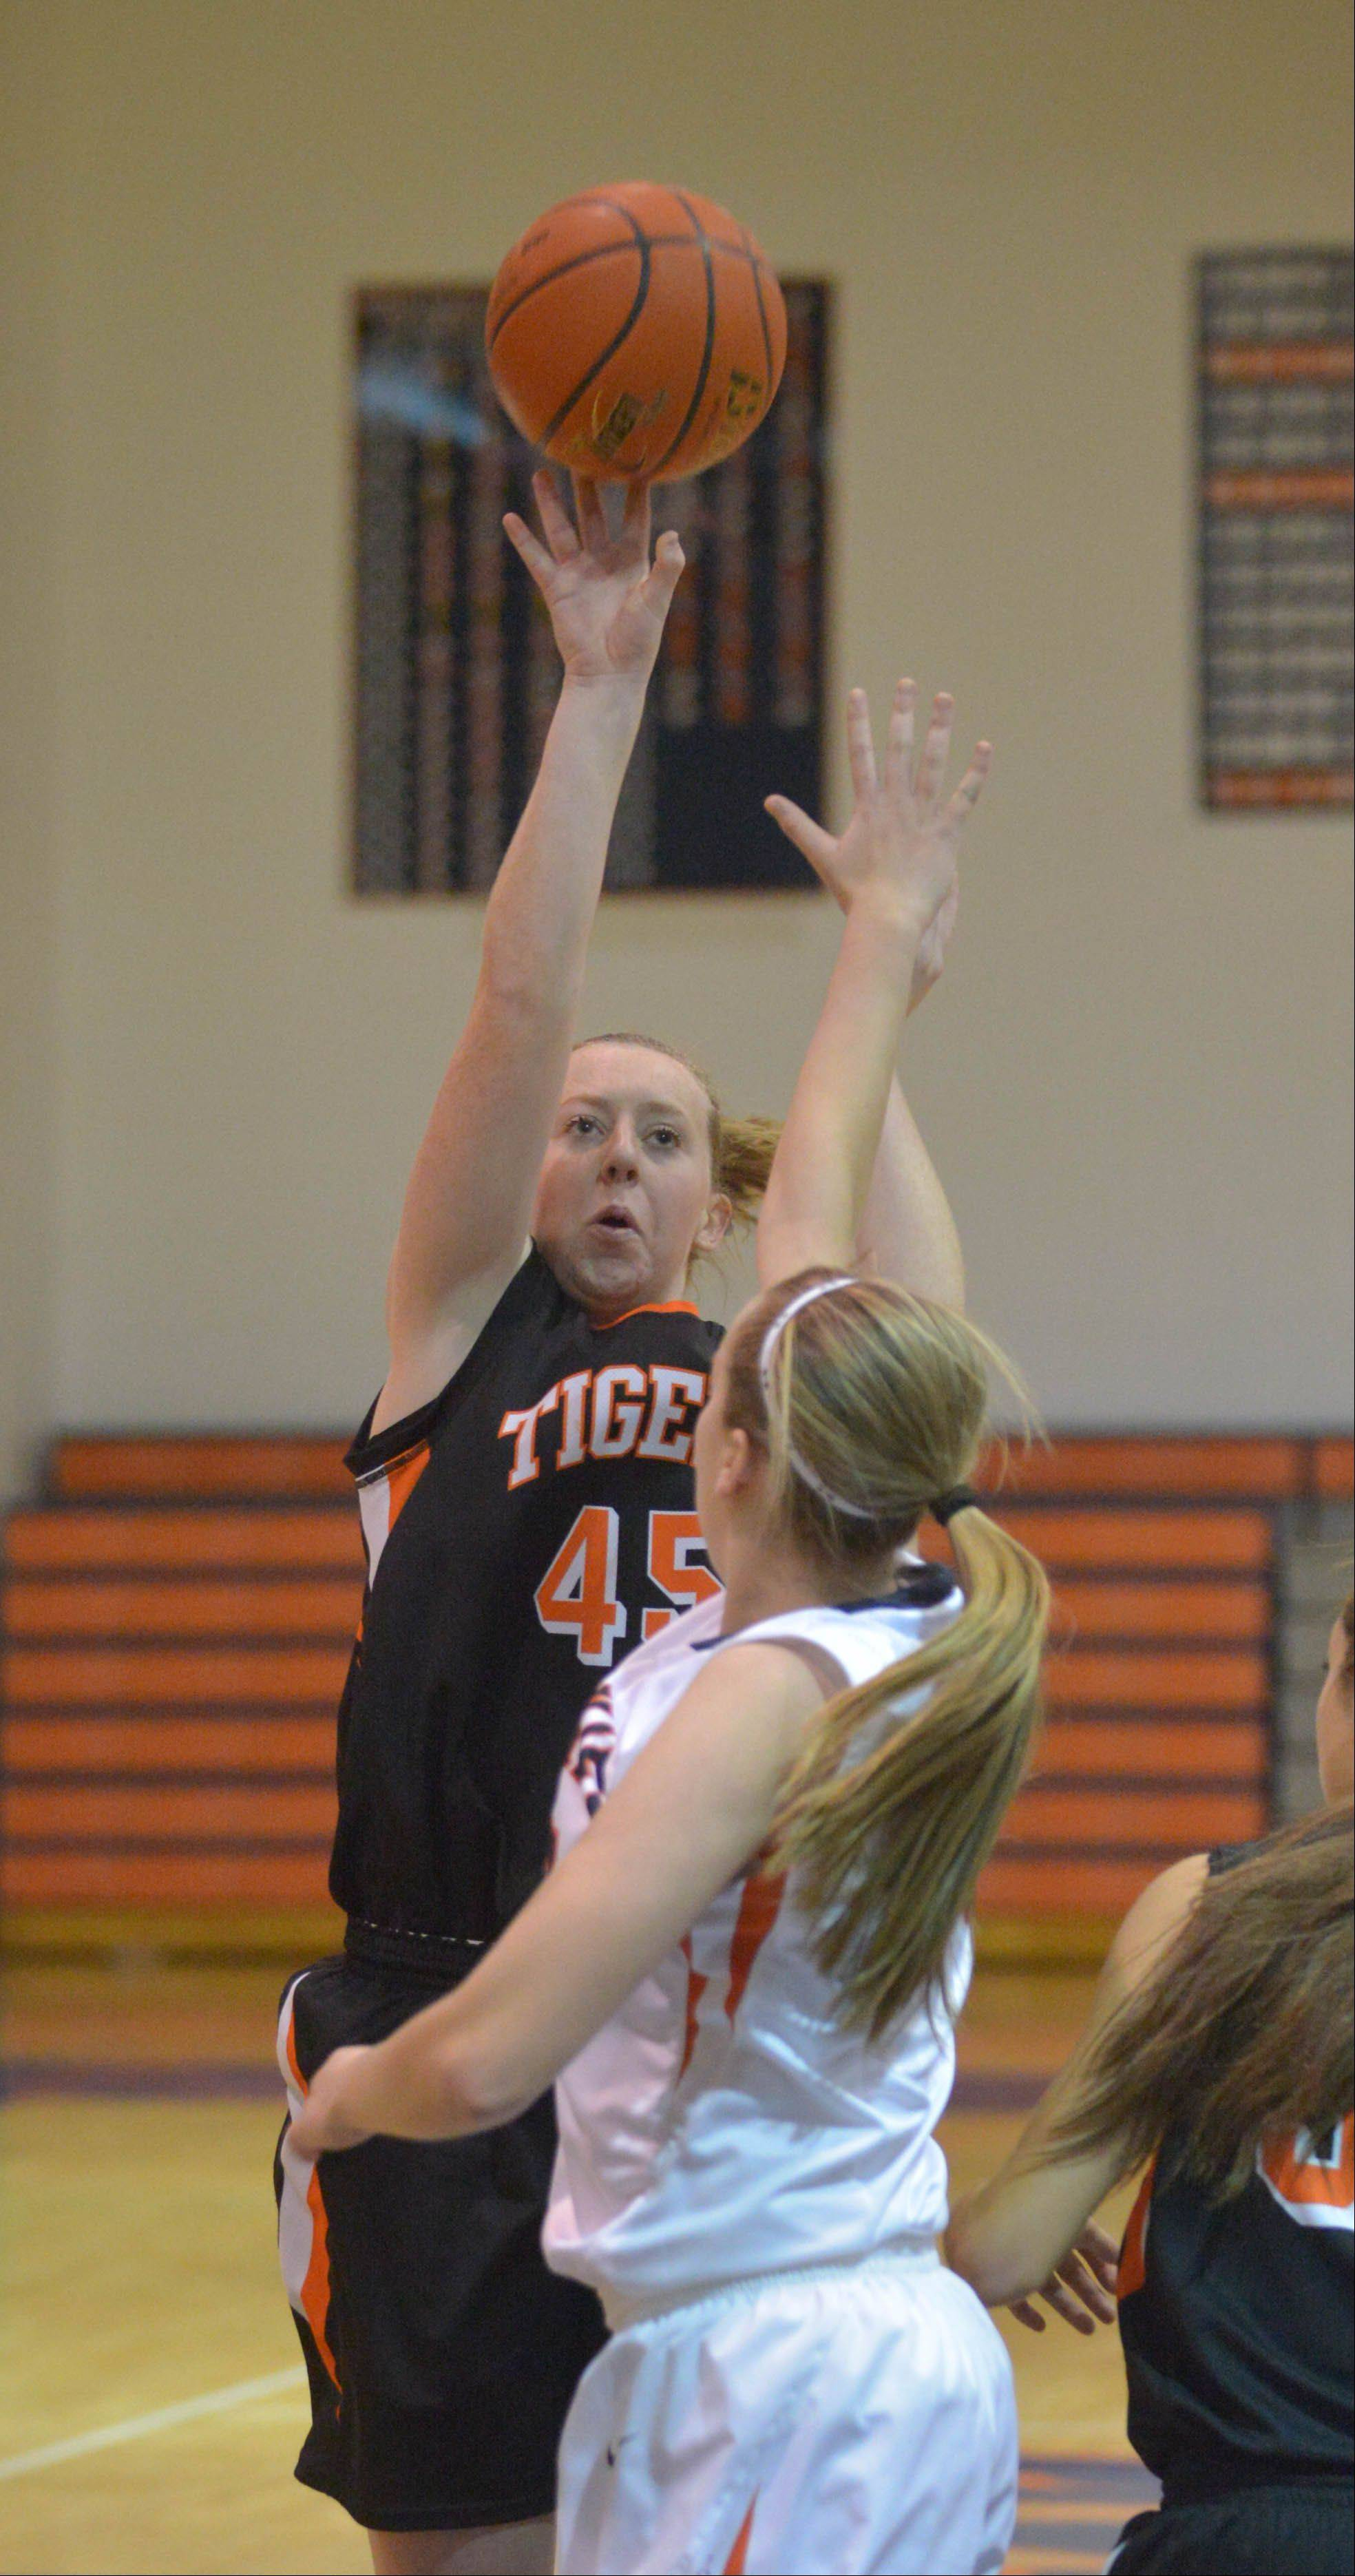 Meghan Waldron takes a shot during the Wheaton Warrenville South at Naperville North girls basketball game Tuesday.